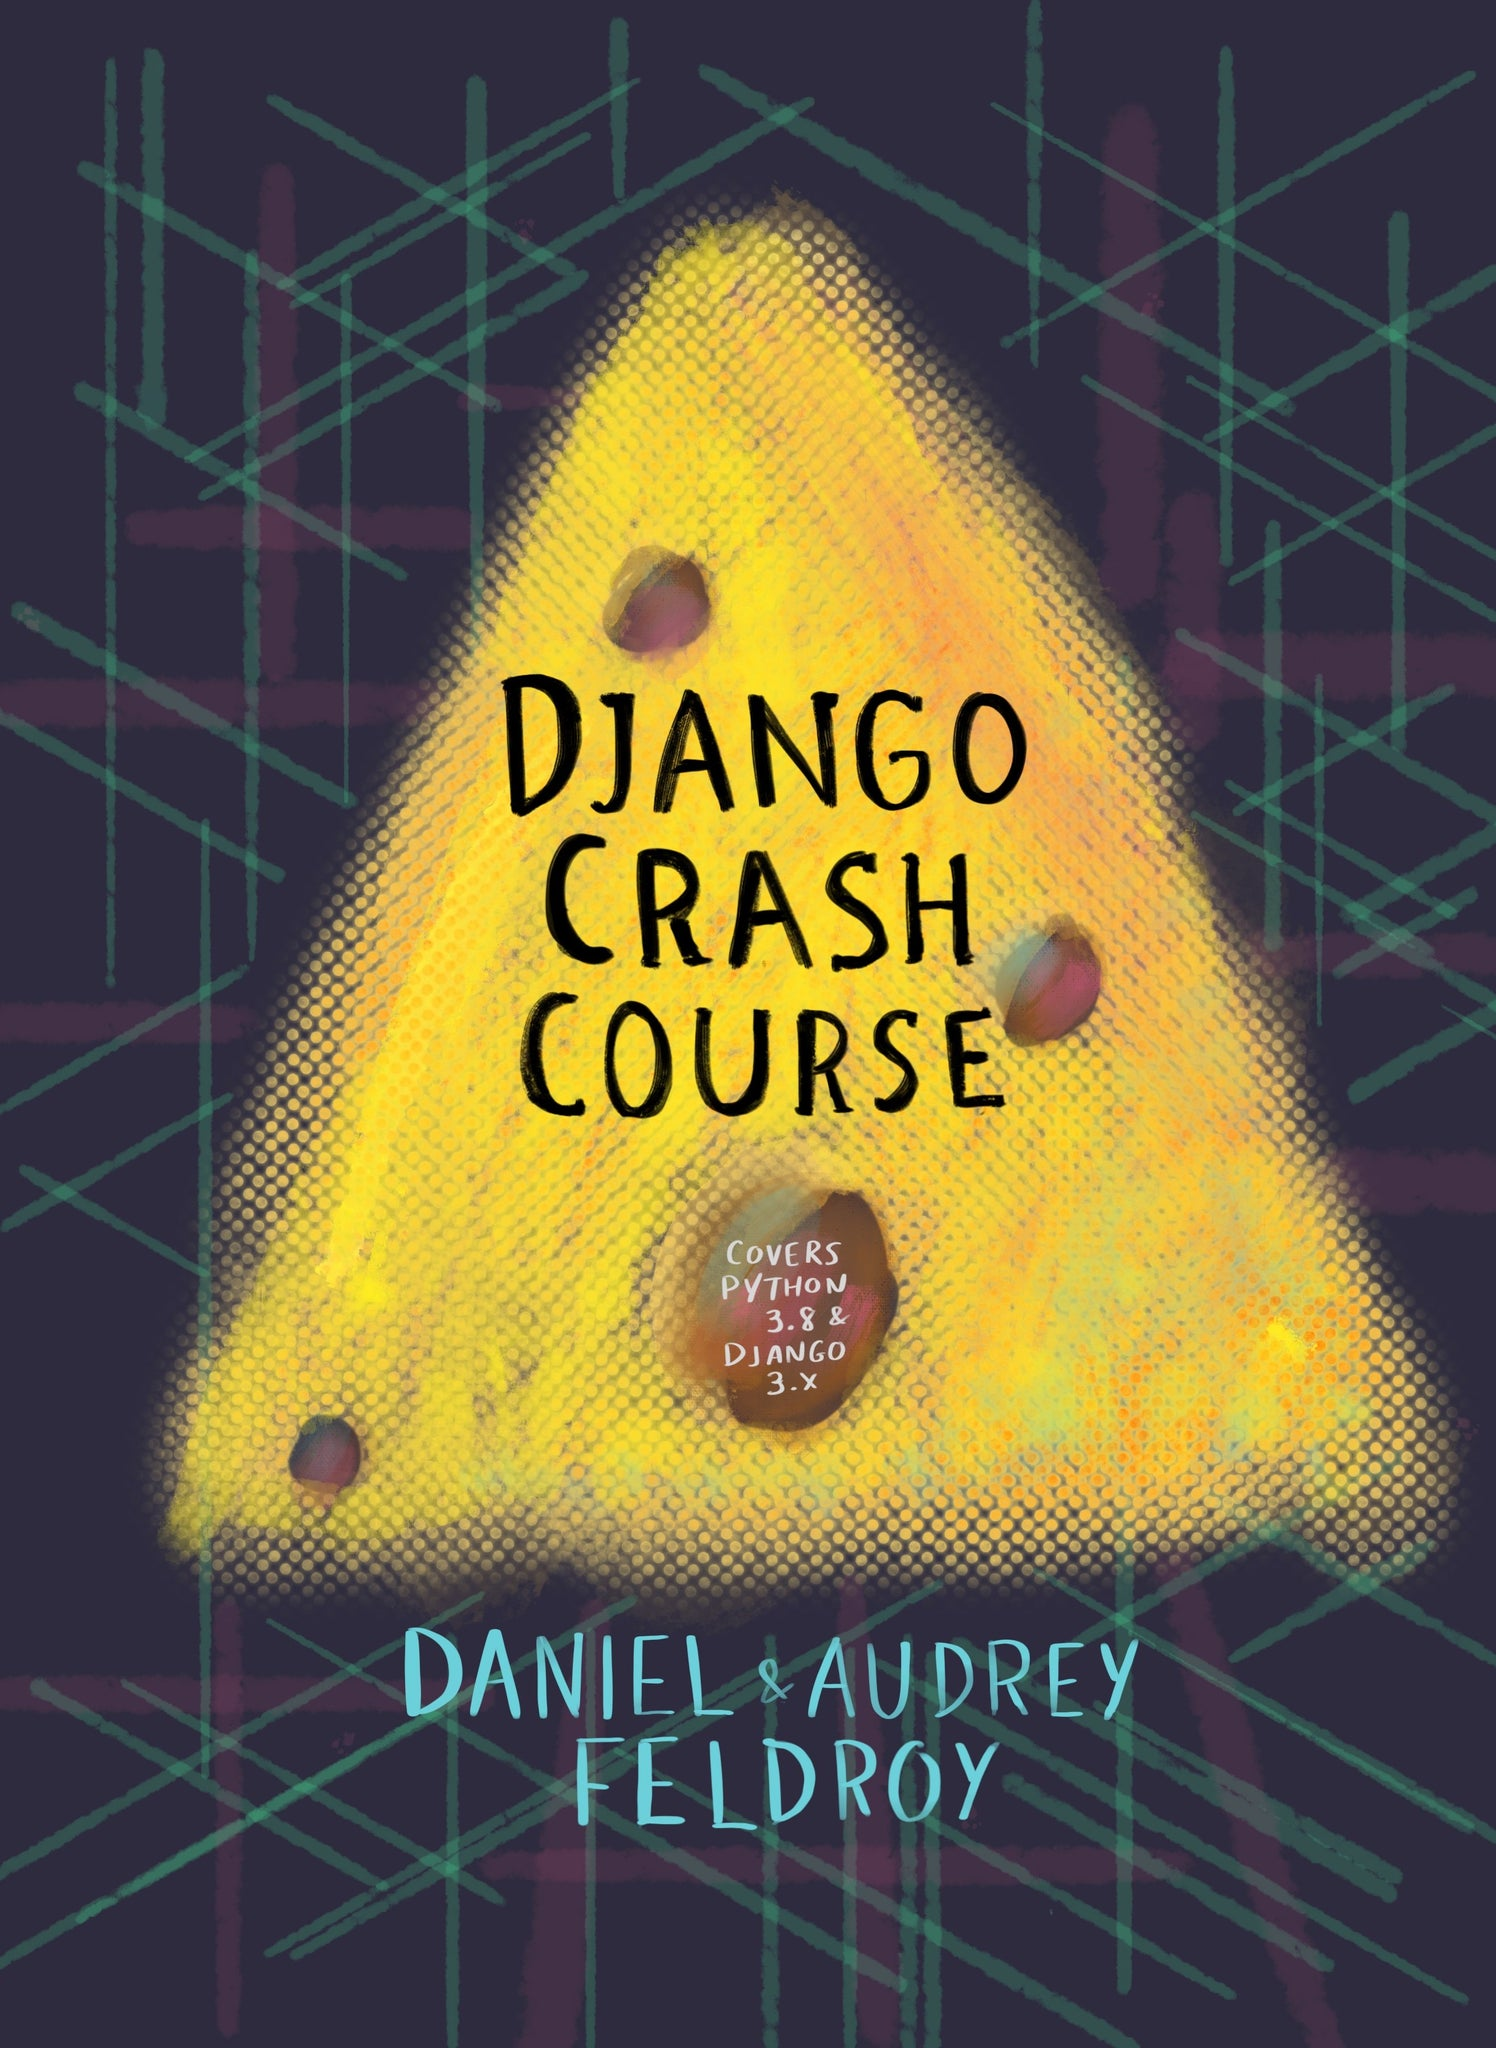 Django Crash Course: Covers Python 3.8 and Django 3.x - Beta Version